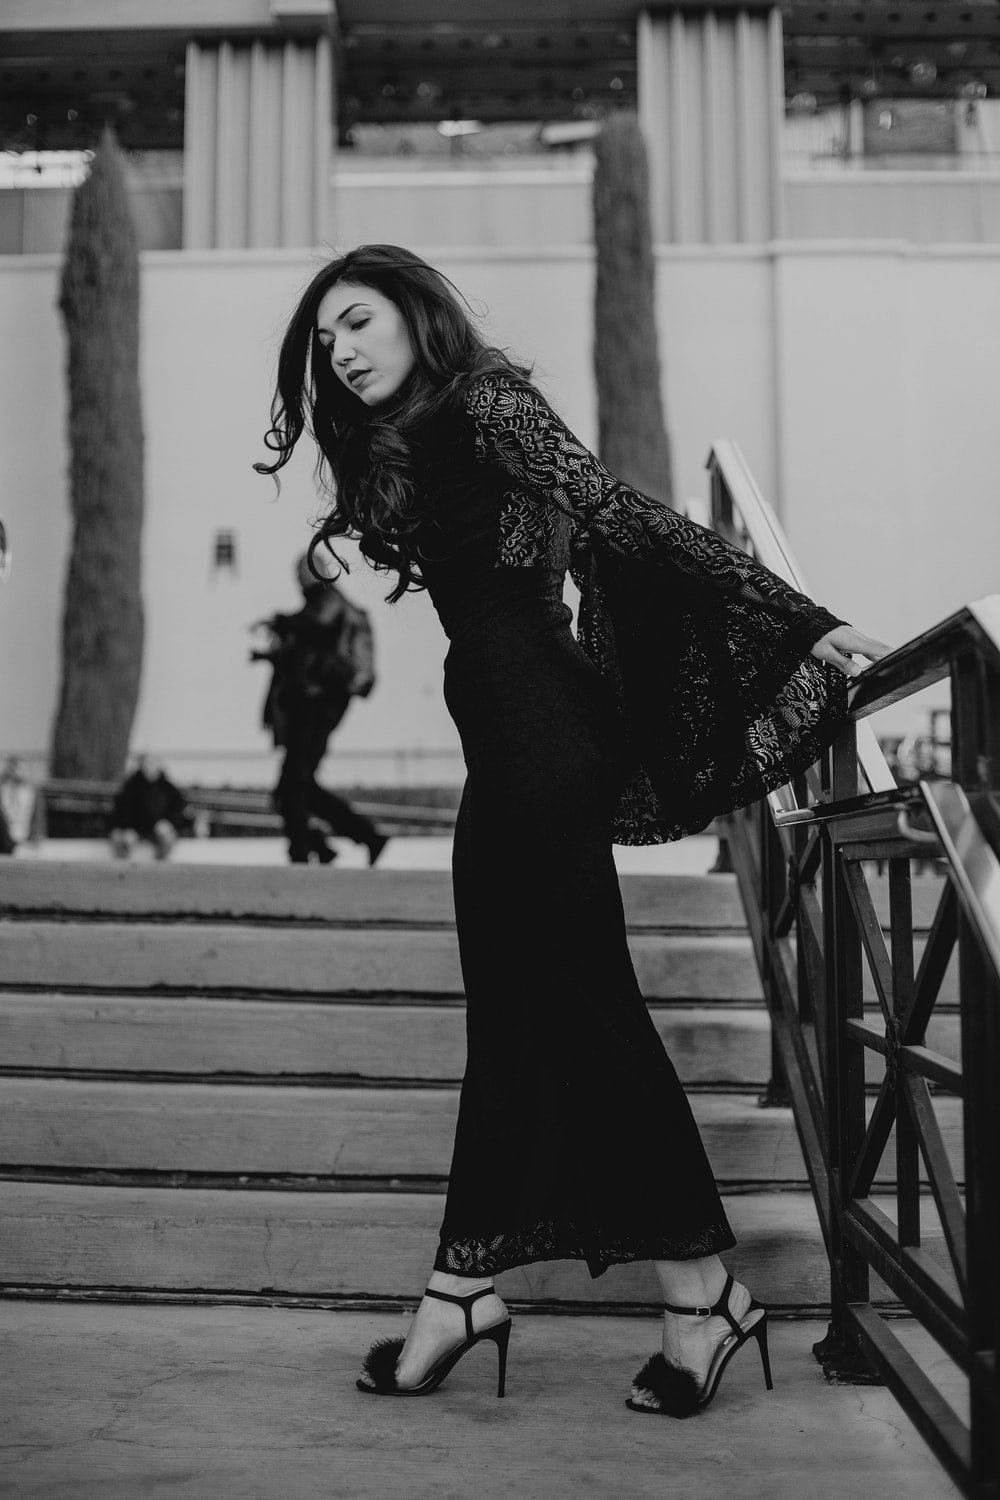 grayscale photography of woman wearing dress standing beside railing